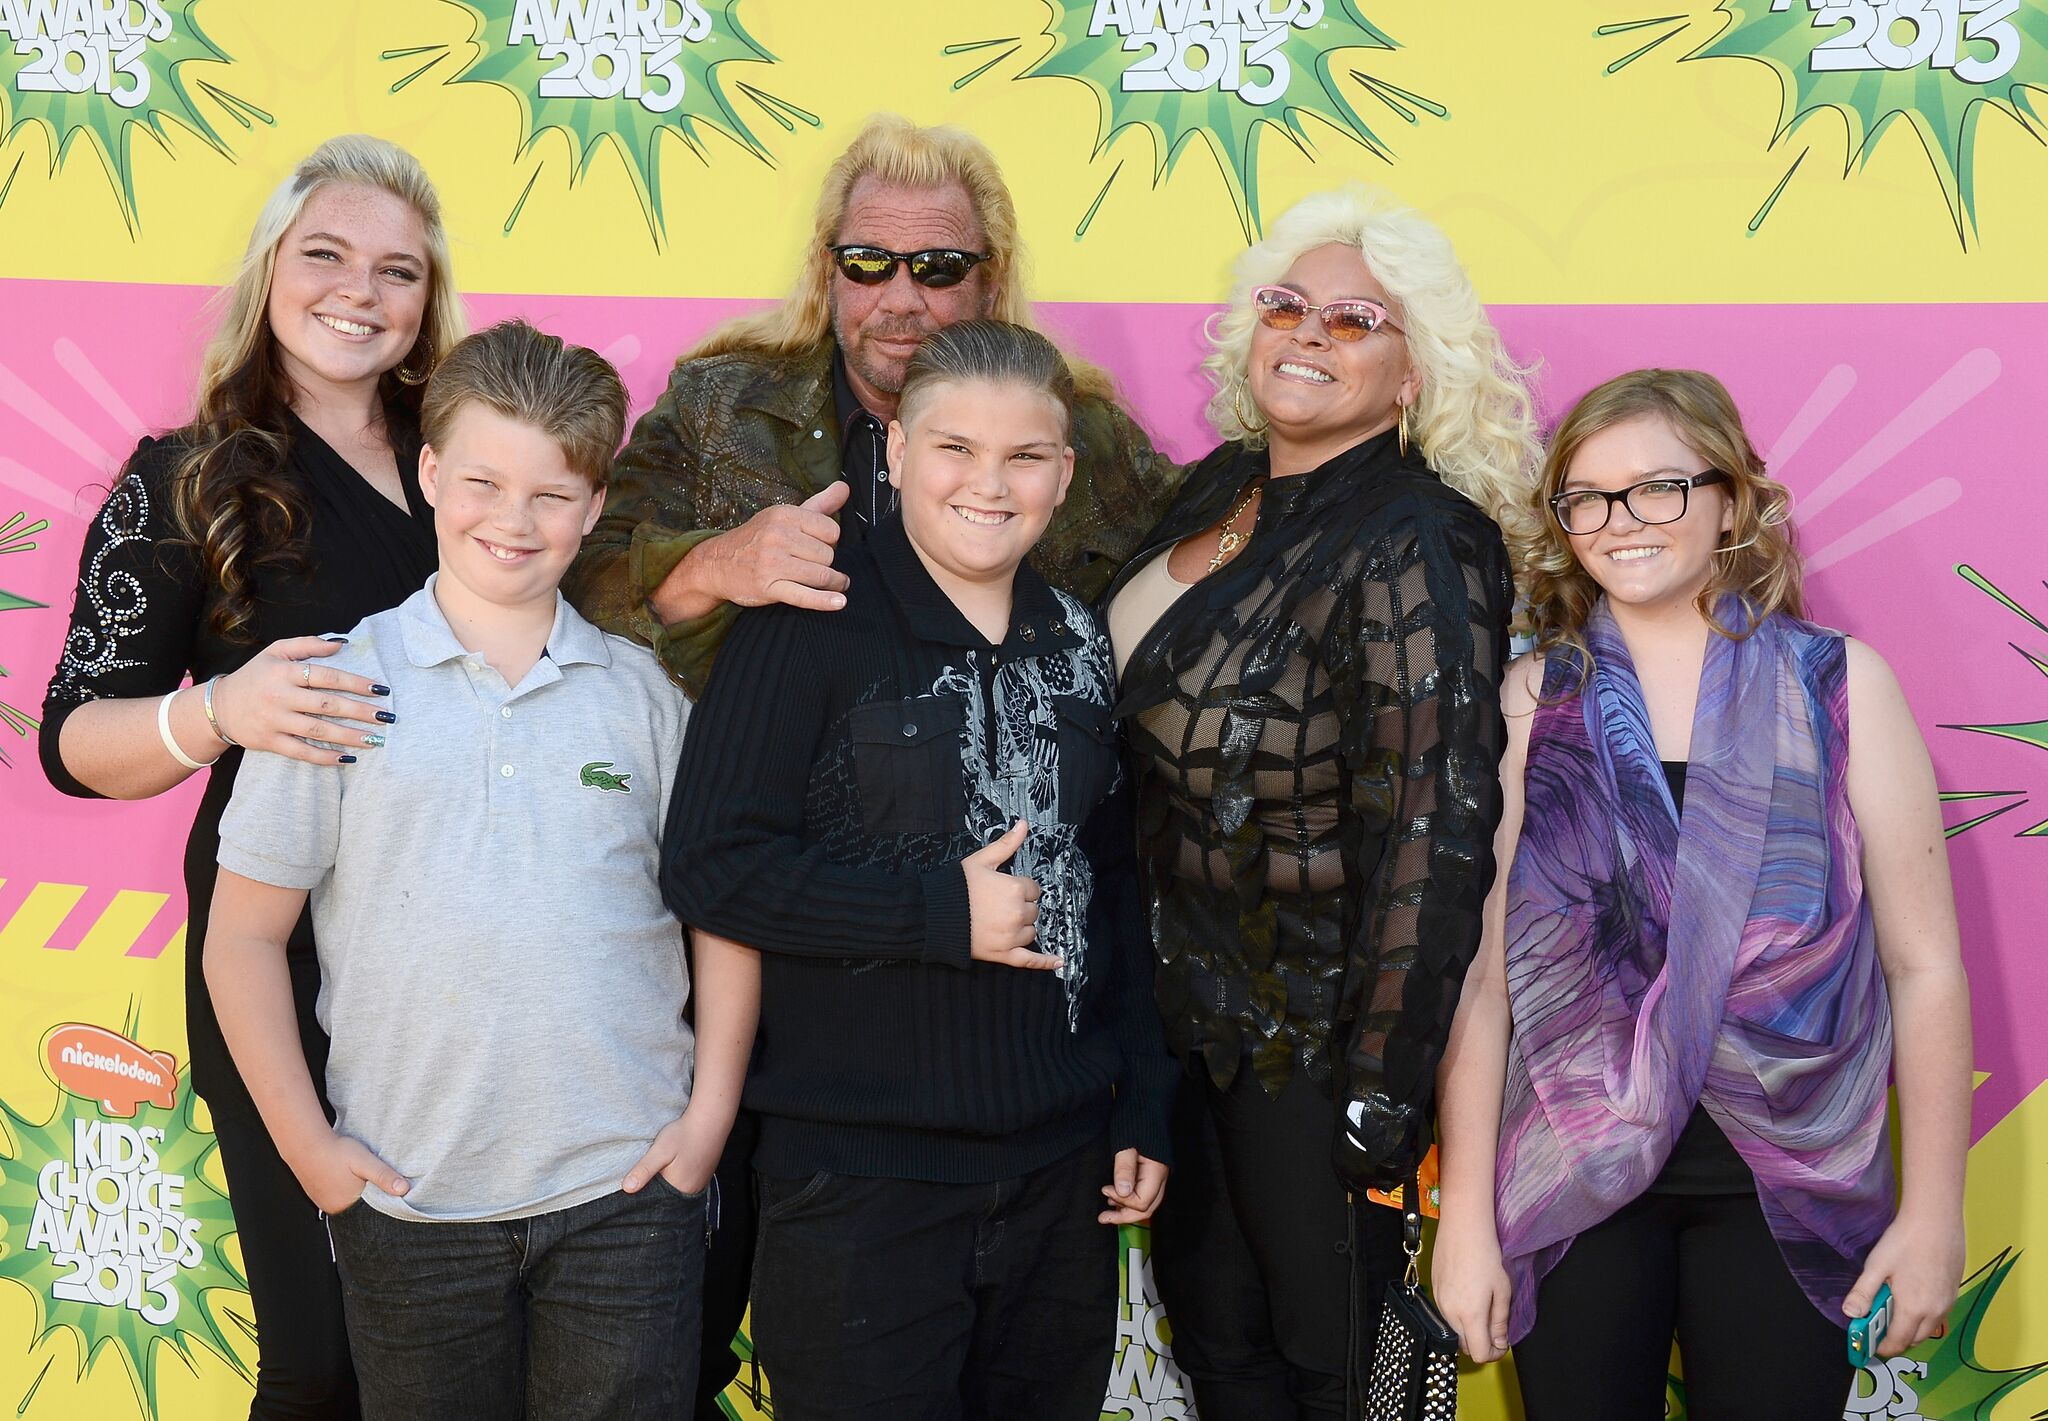 TV personality Duane 'Dog' Chapman and family arrive at Nickelodeon's 26th Annual Kids' Choice Awards | Getty Images